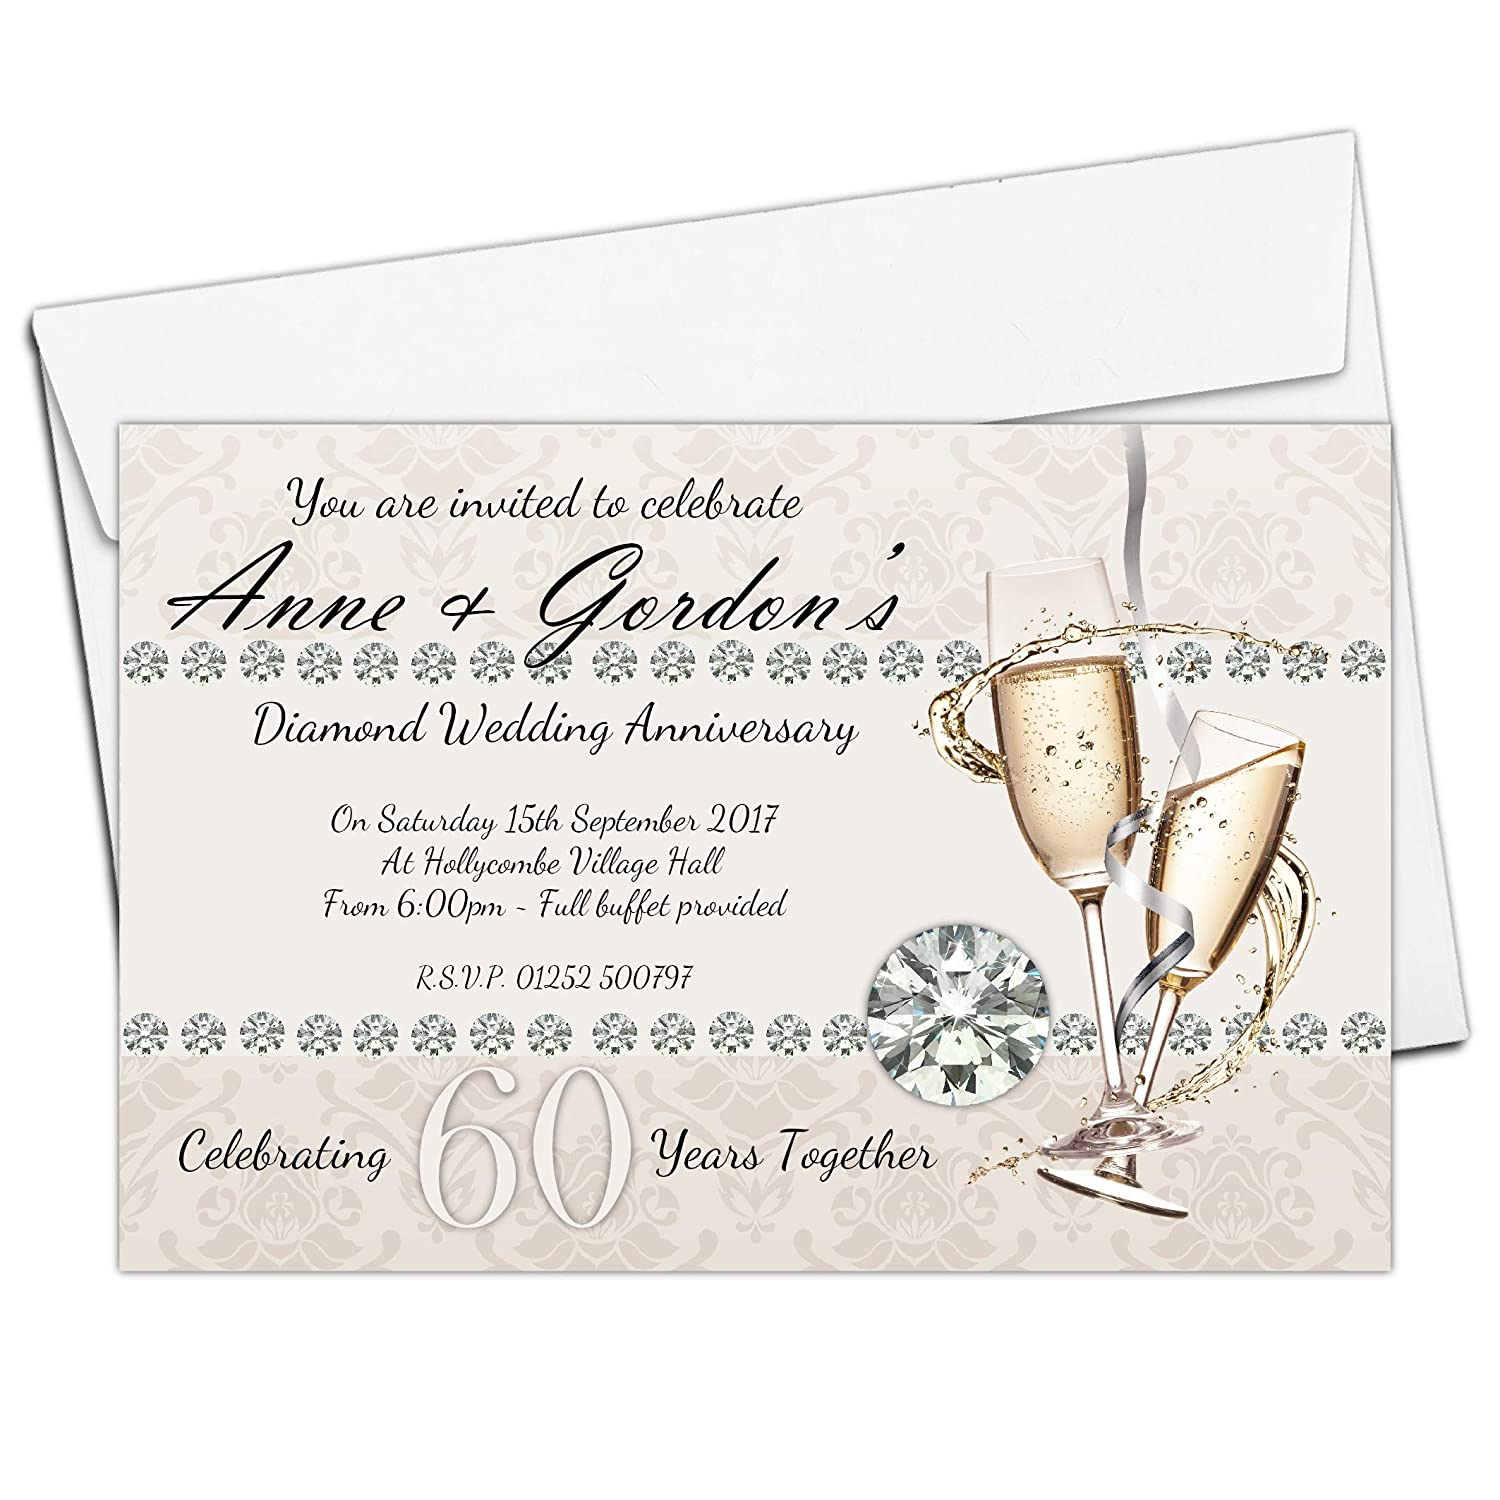 10 Personalised 60th Diamond Wedding Anniversary Invitations Invites N18 Invite Designs Ltd